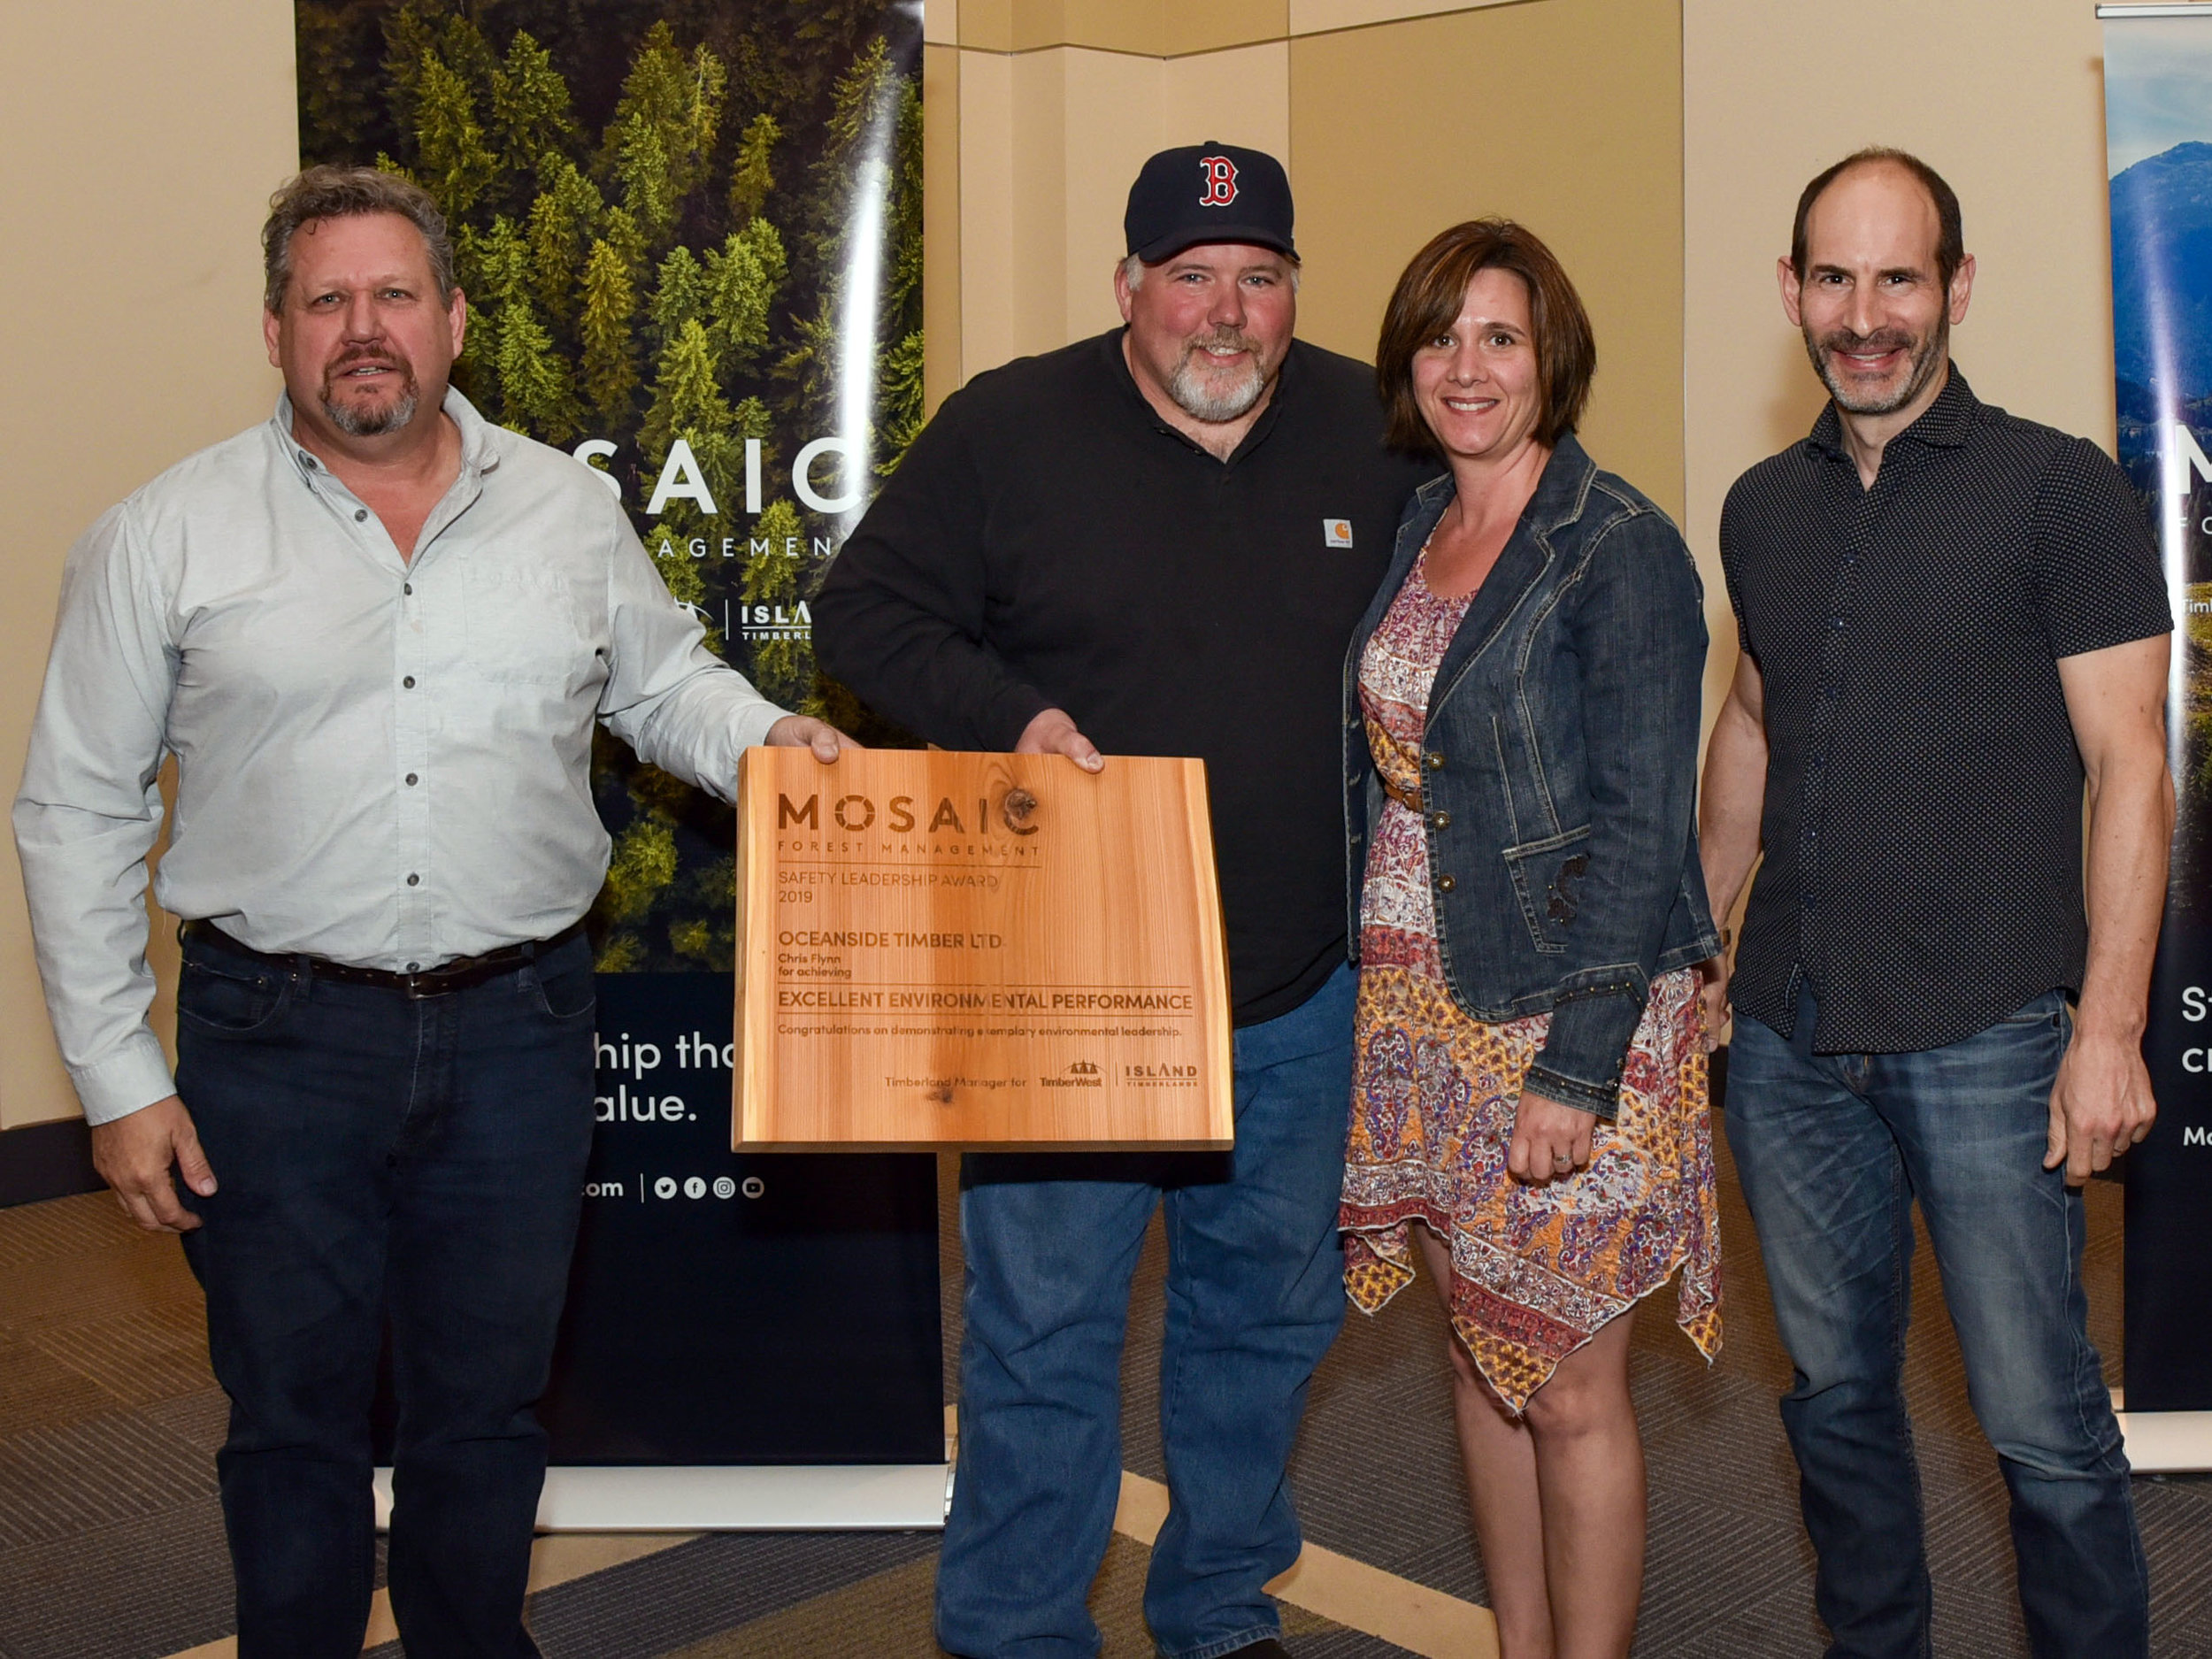 (l to r) Mike Reagon, Mosaic's General Manager, Operations – South Island; Chris and Danielle Flynn, of Oceanside Timber Ltd.; and Jeff Zweig, President and Chief Executive Officer, Mosaic.